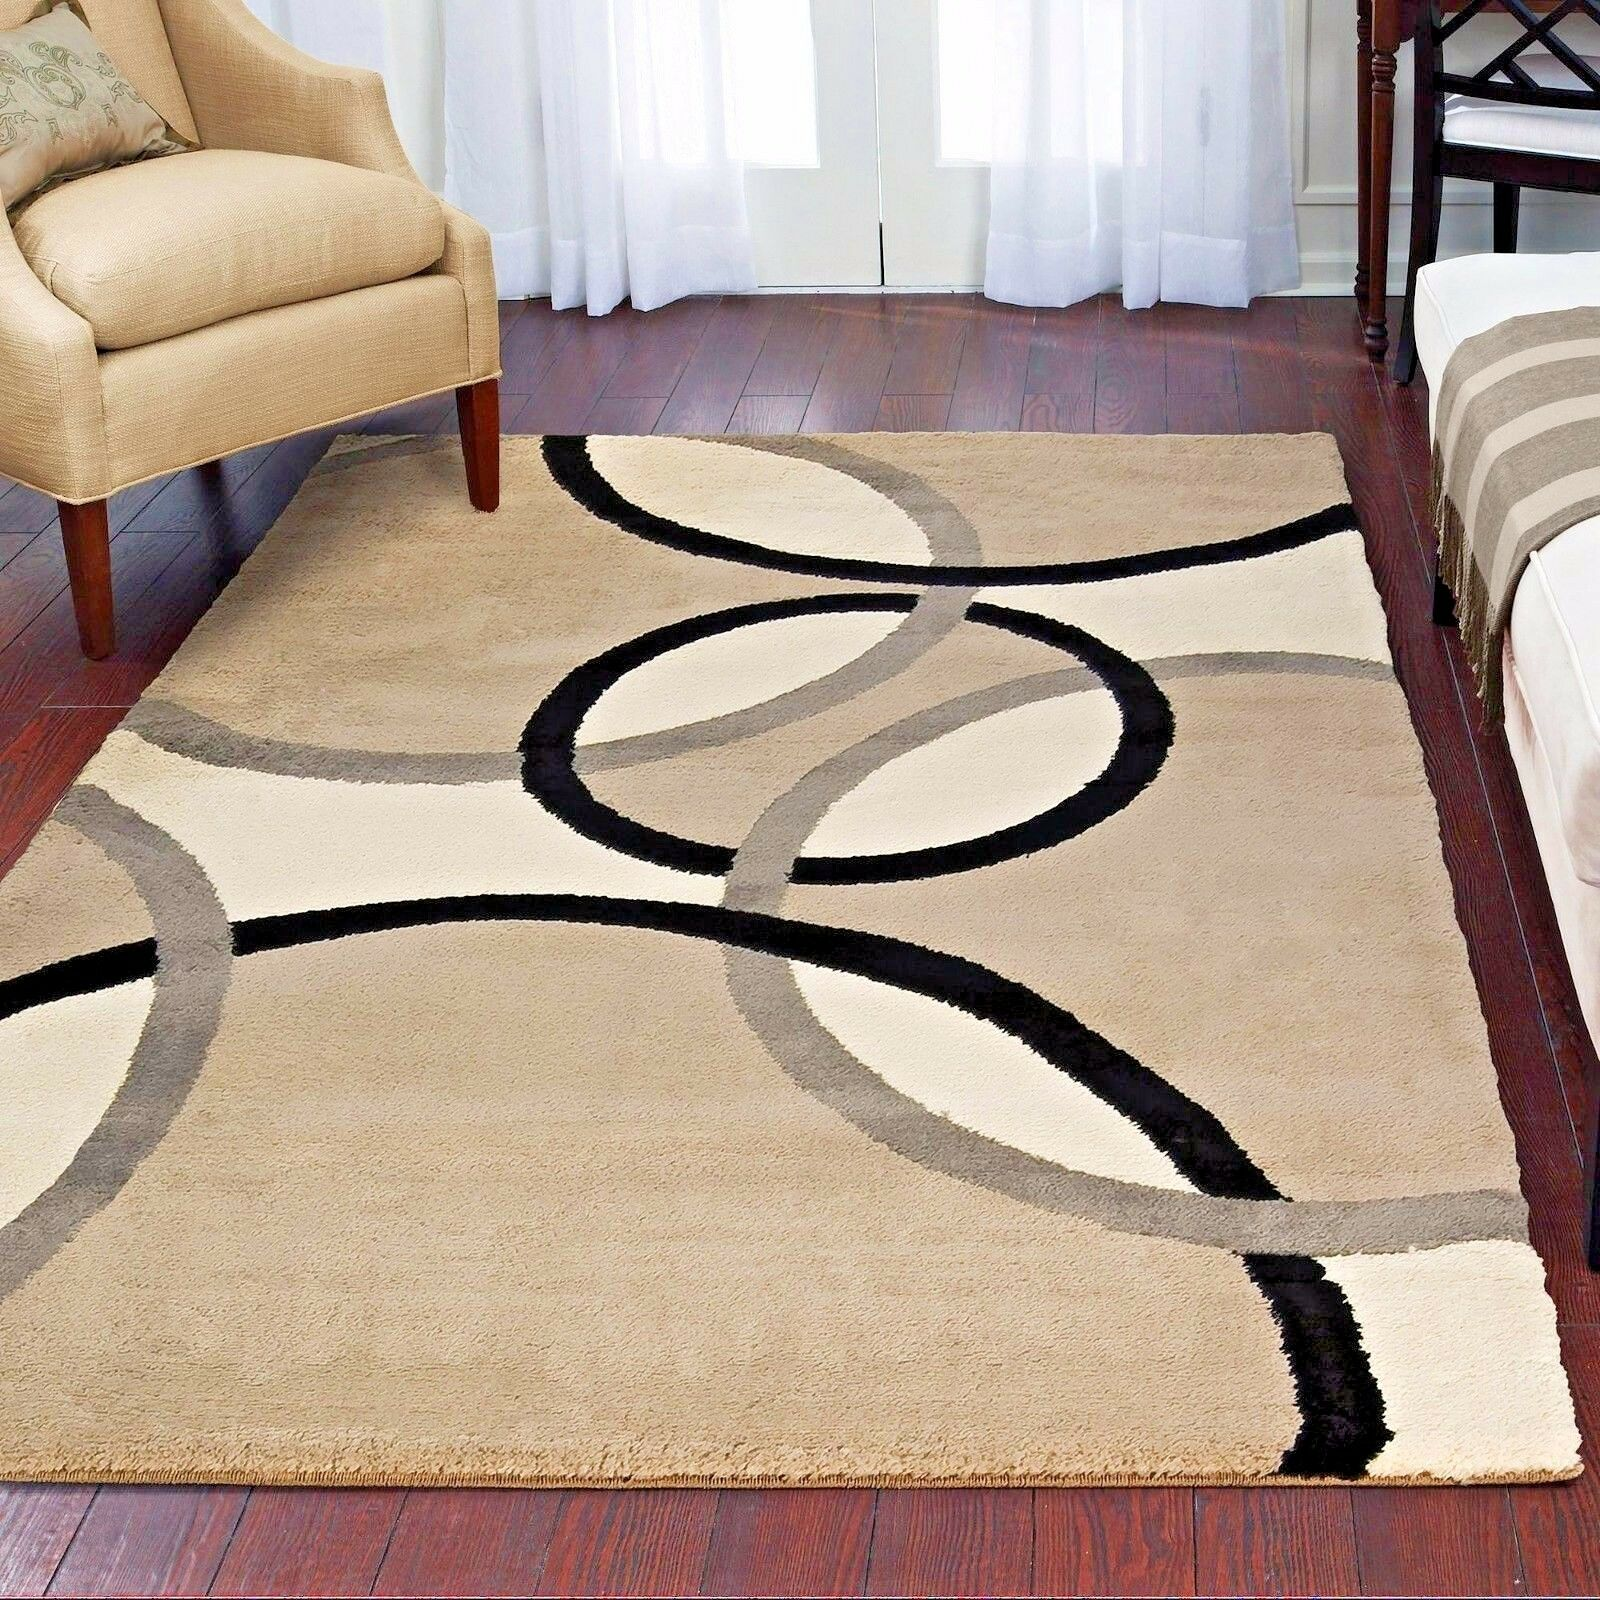 Rugs Area Rugs Carpets 8x10 Rug Floor Modern Large Big